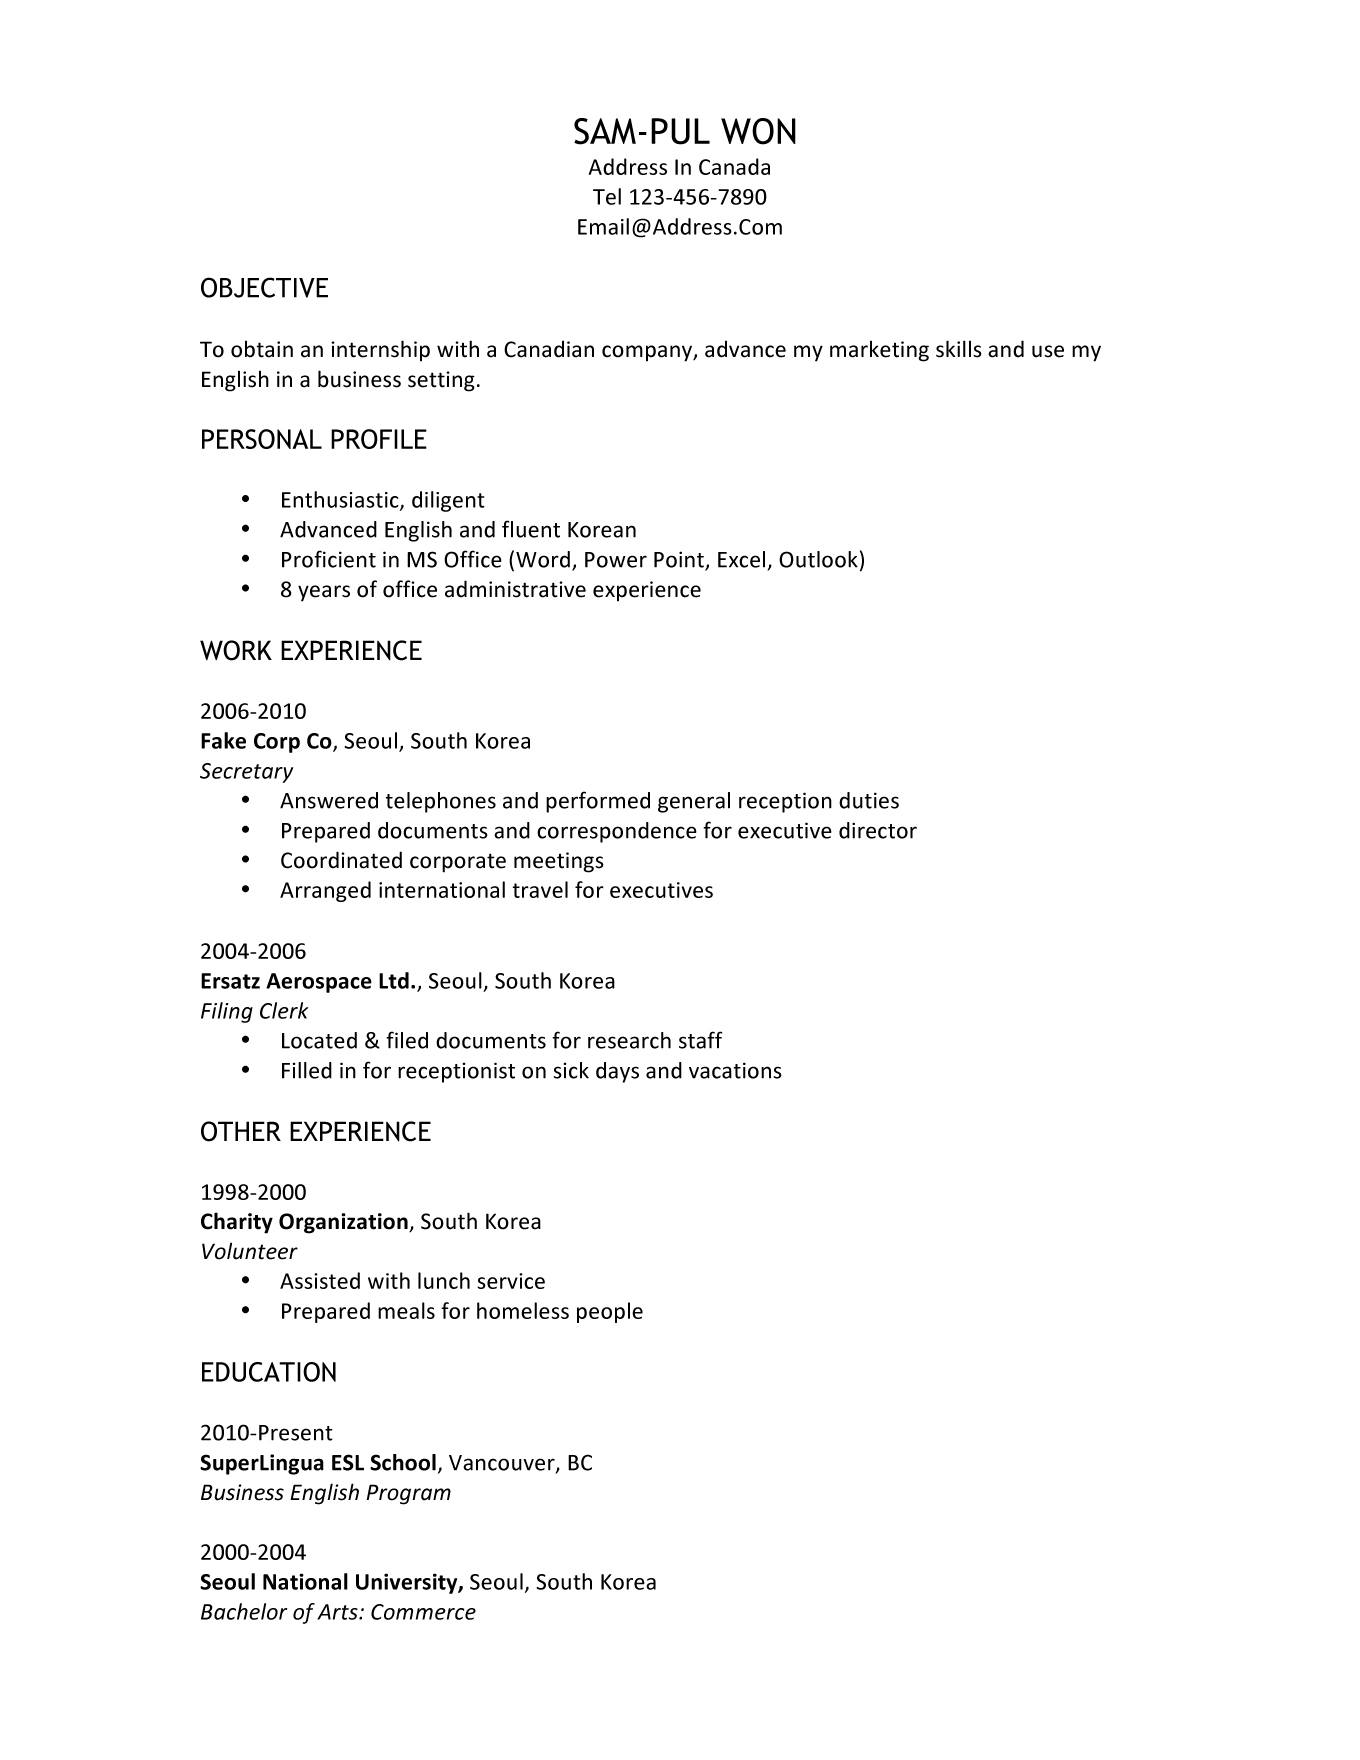 resume referrals upon request professional resume it sample resume maker create professional examples of good resumes - How To Make Proper Resume